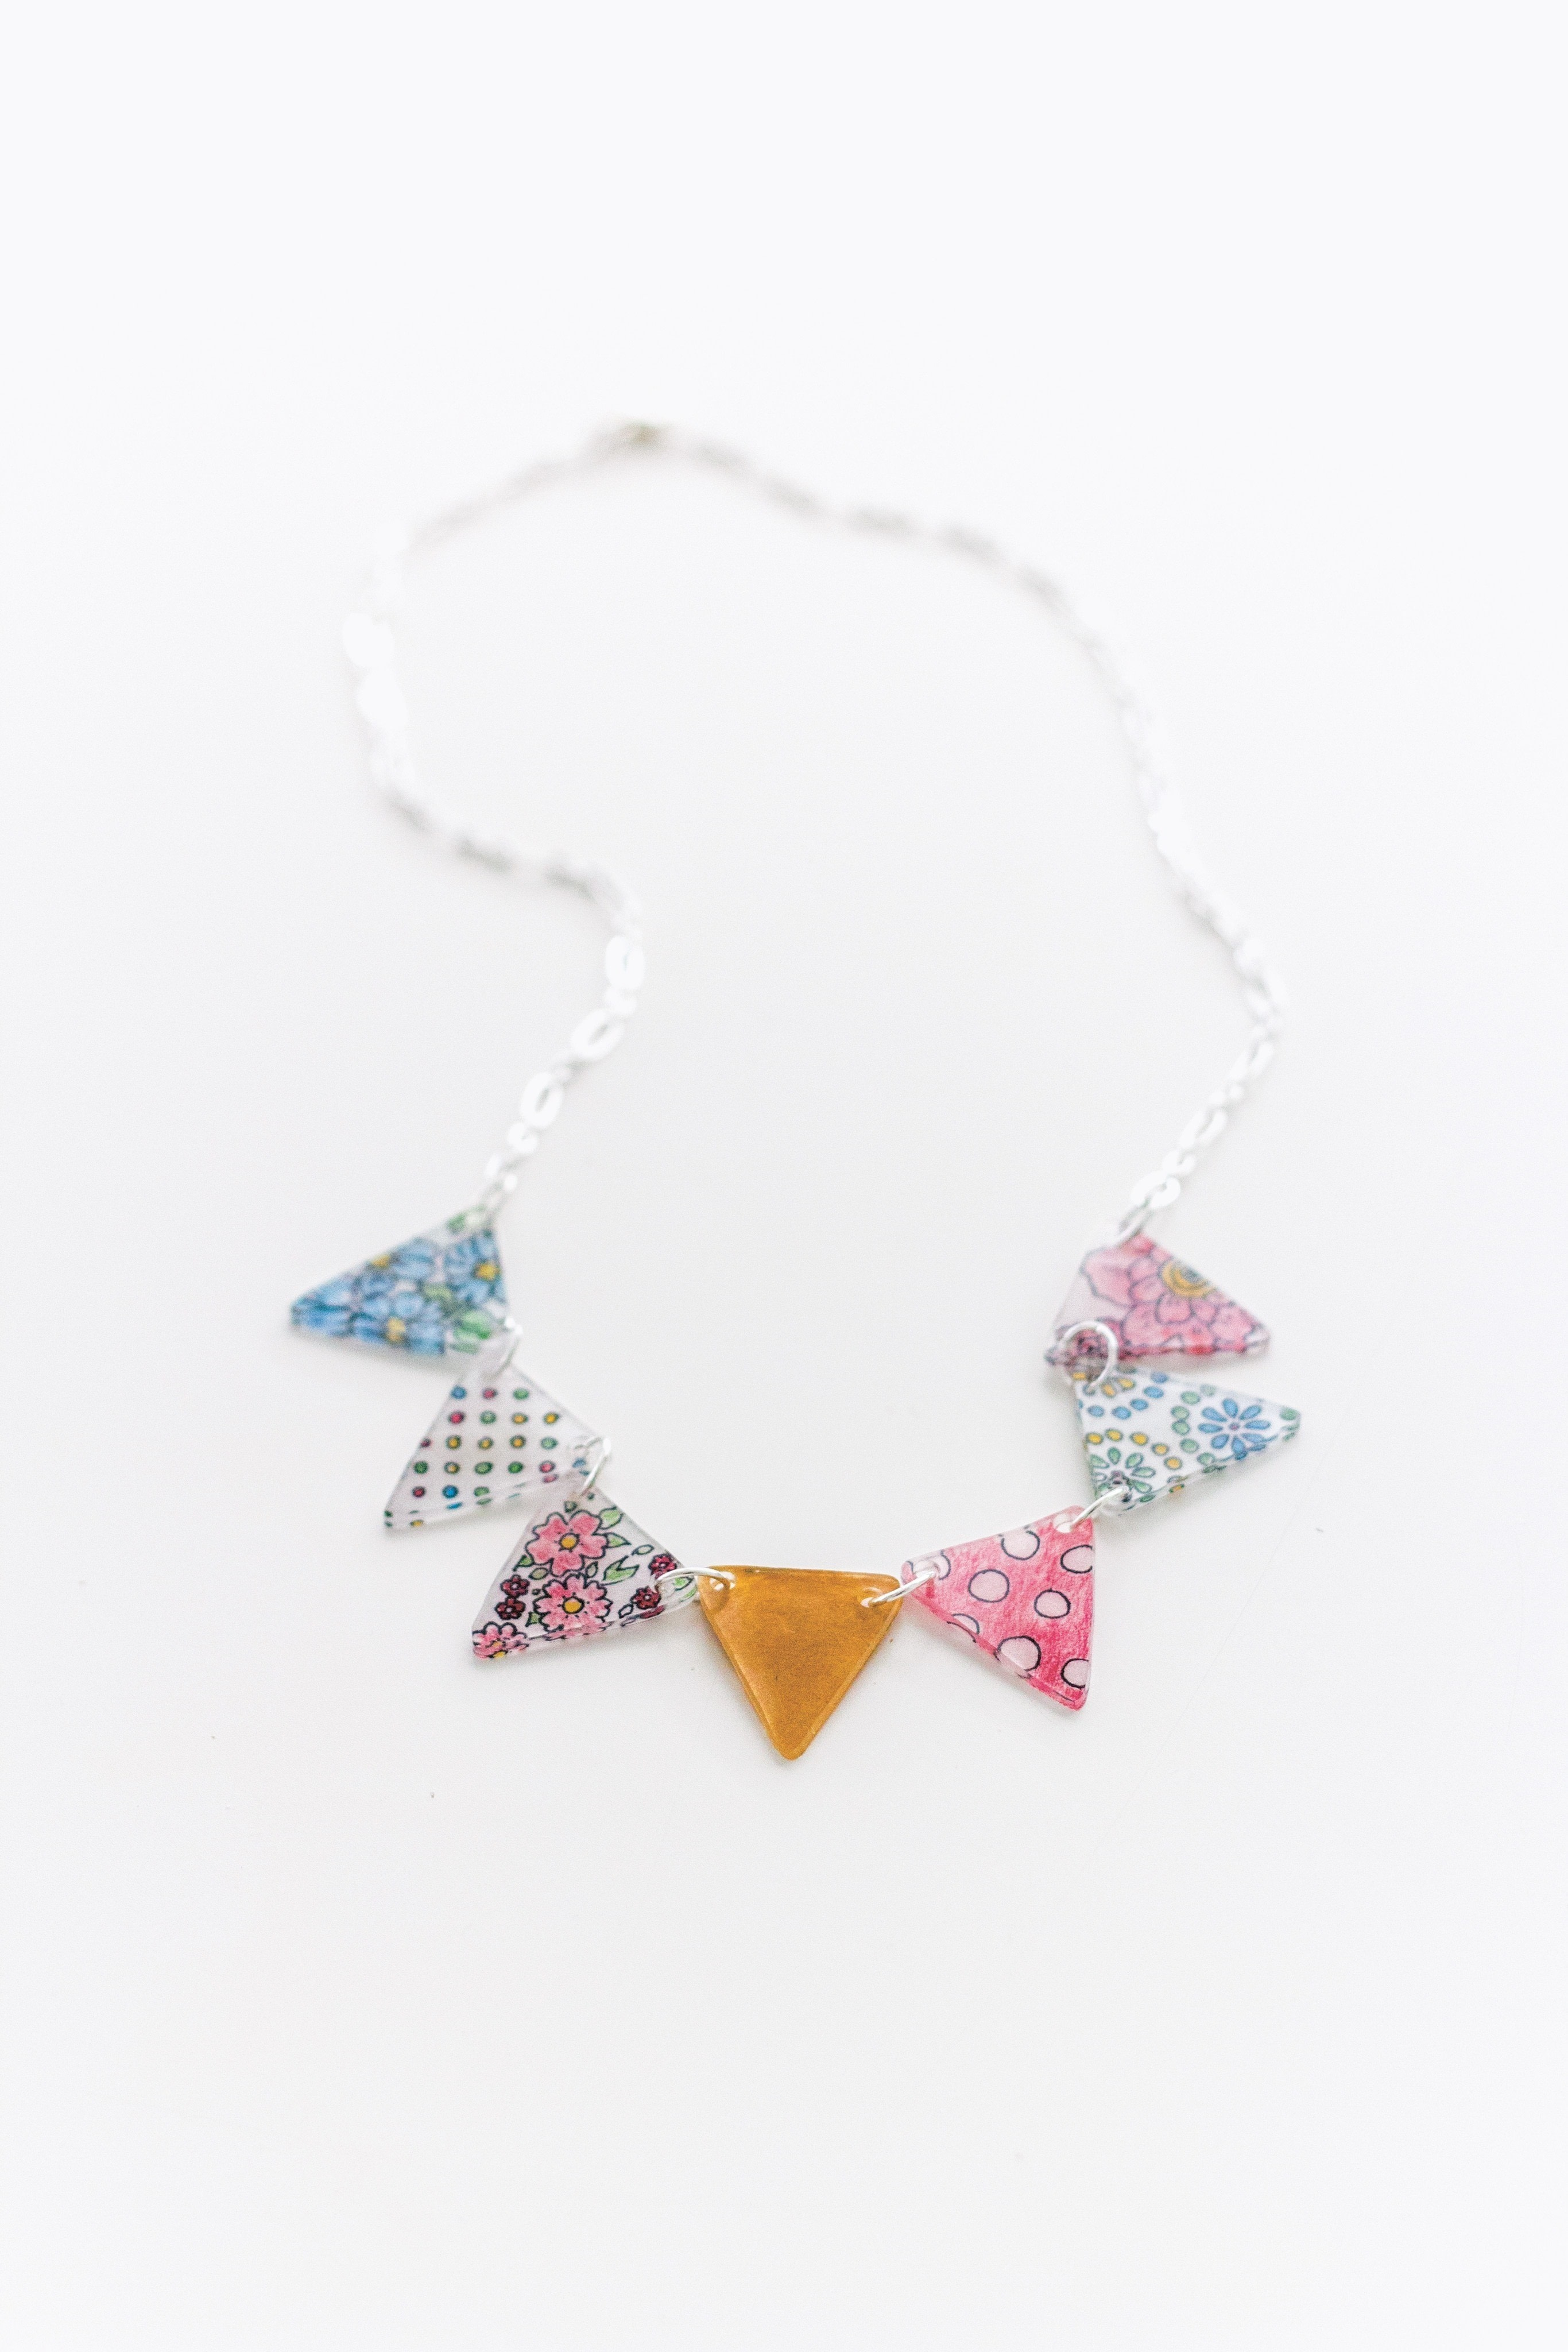 Shrink Plastic Bunting Necklace · Extract from Banners